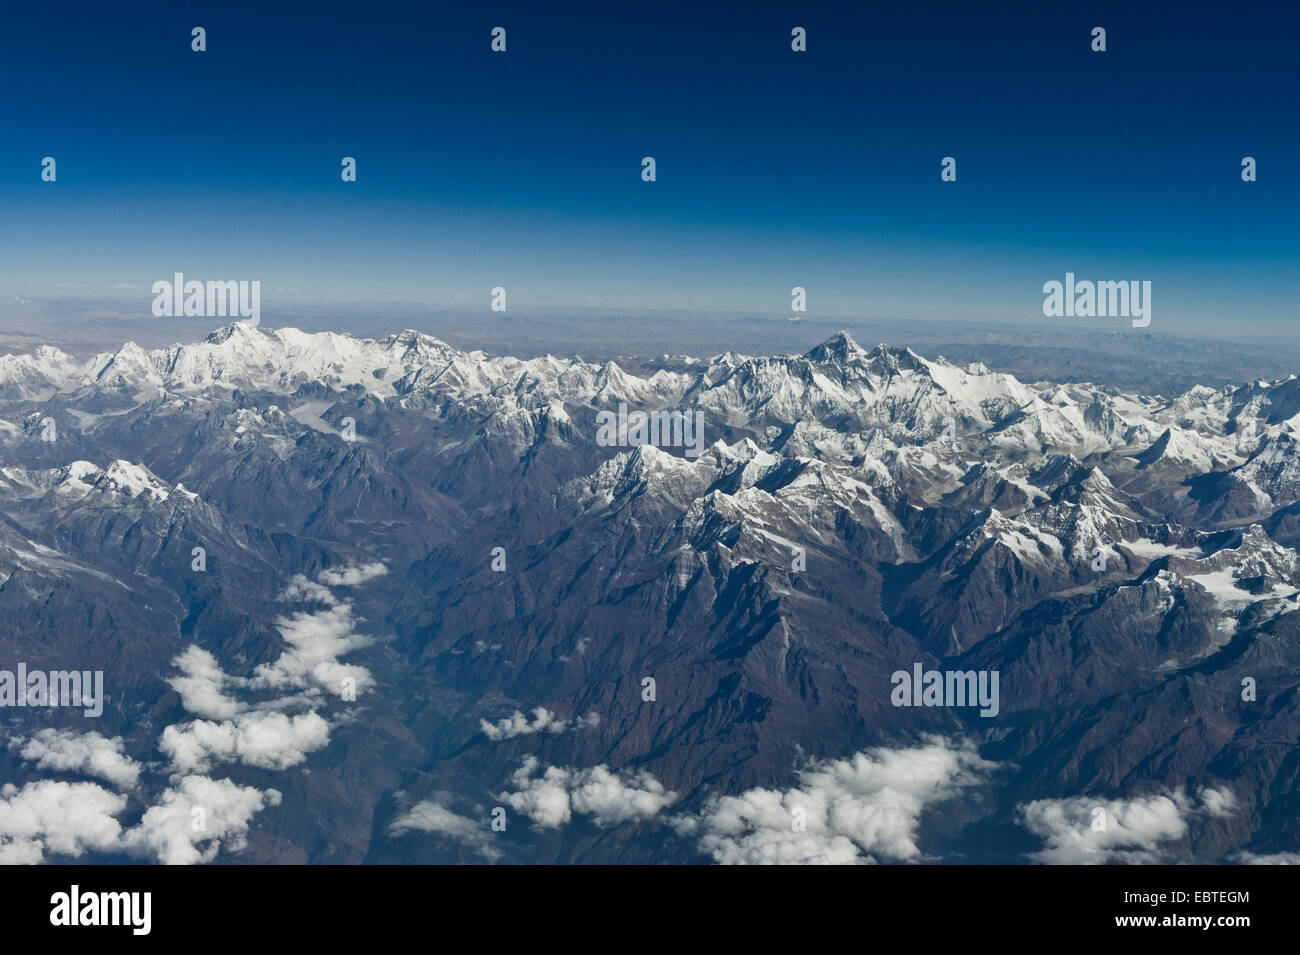 View of Mount Everest, from airplane, between Bhutan and India - Stock Image